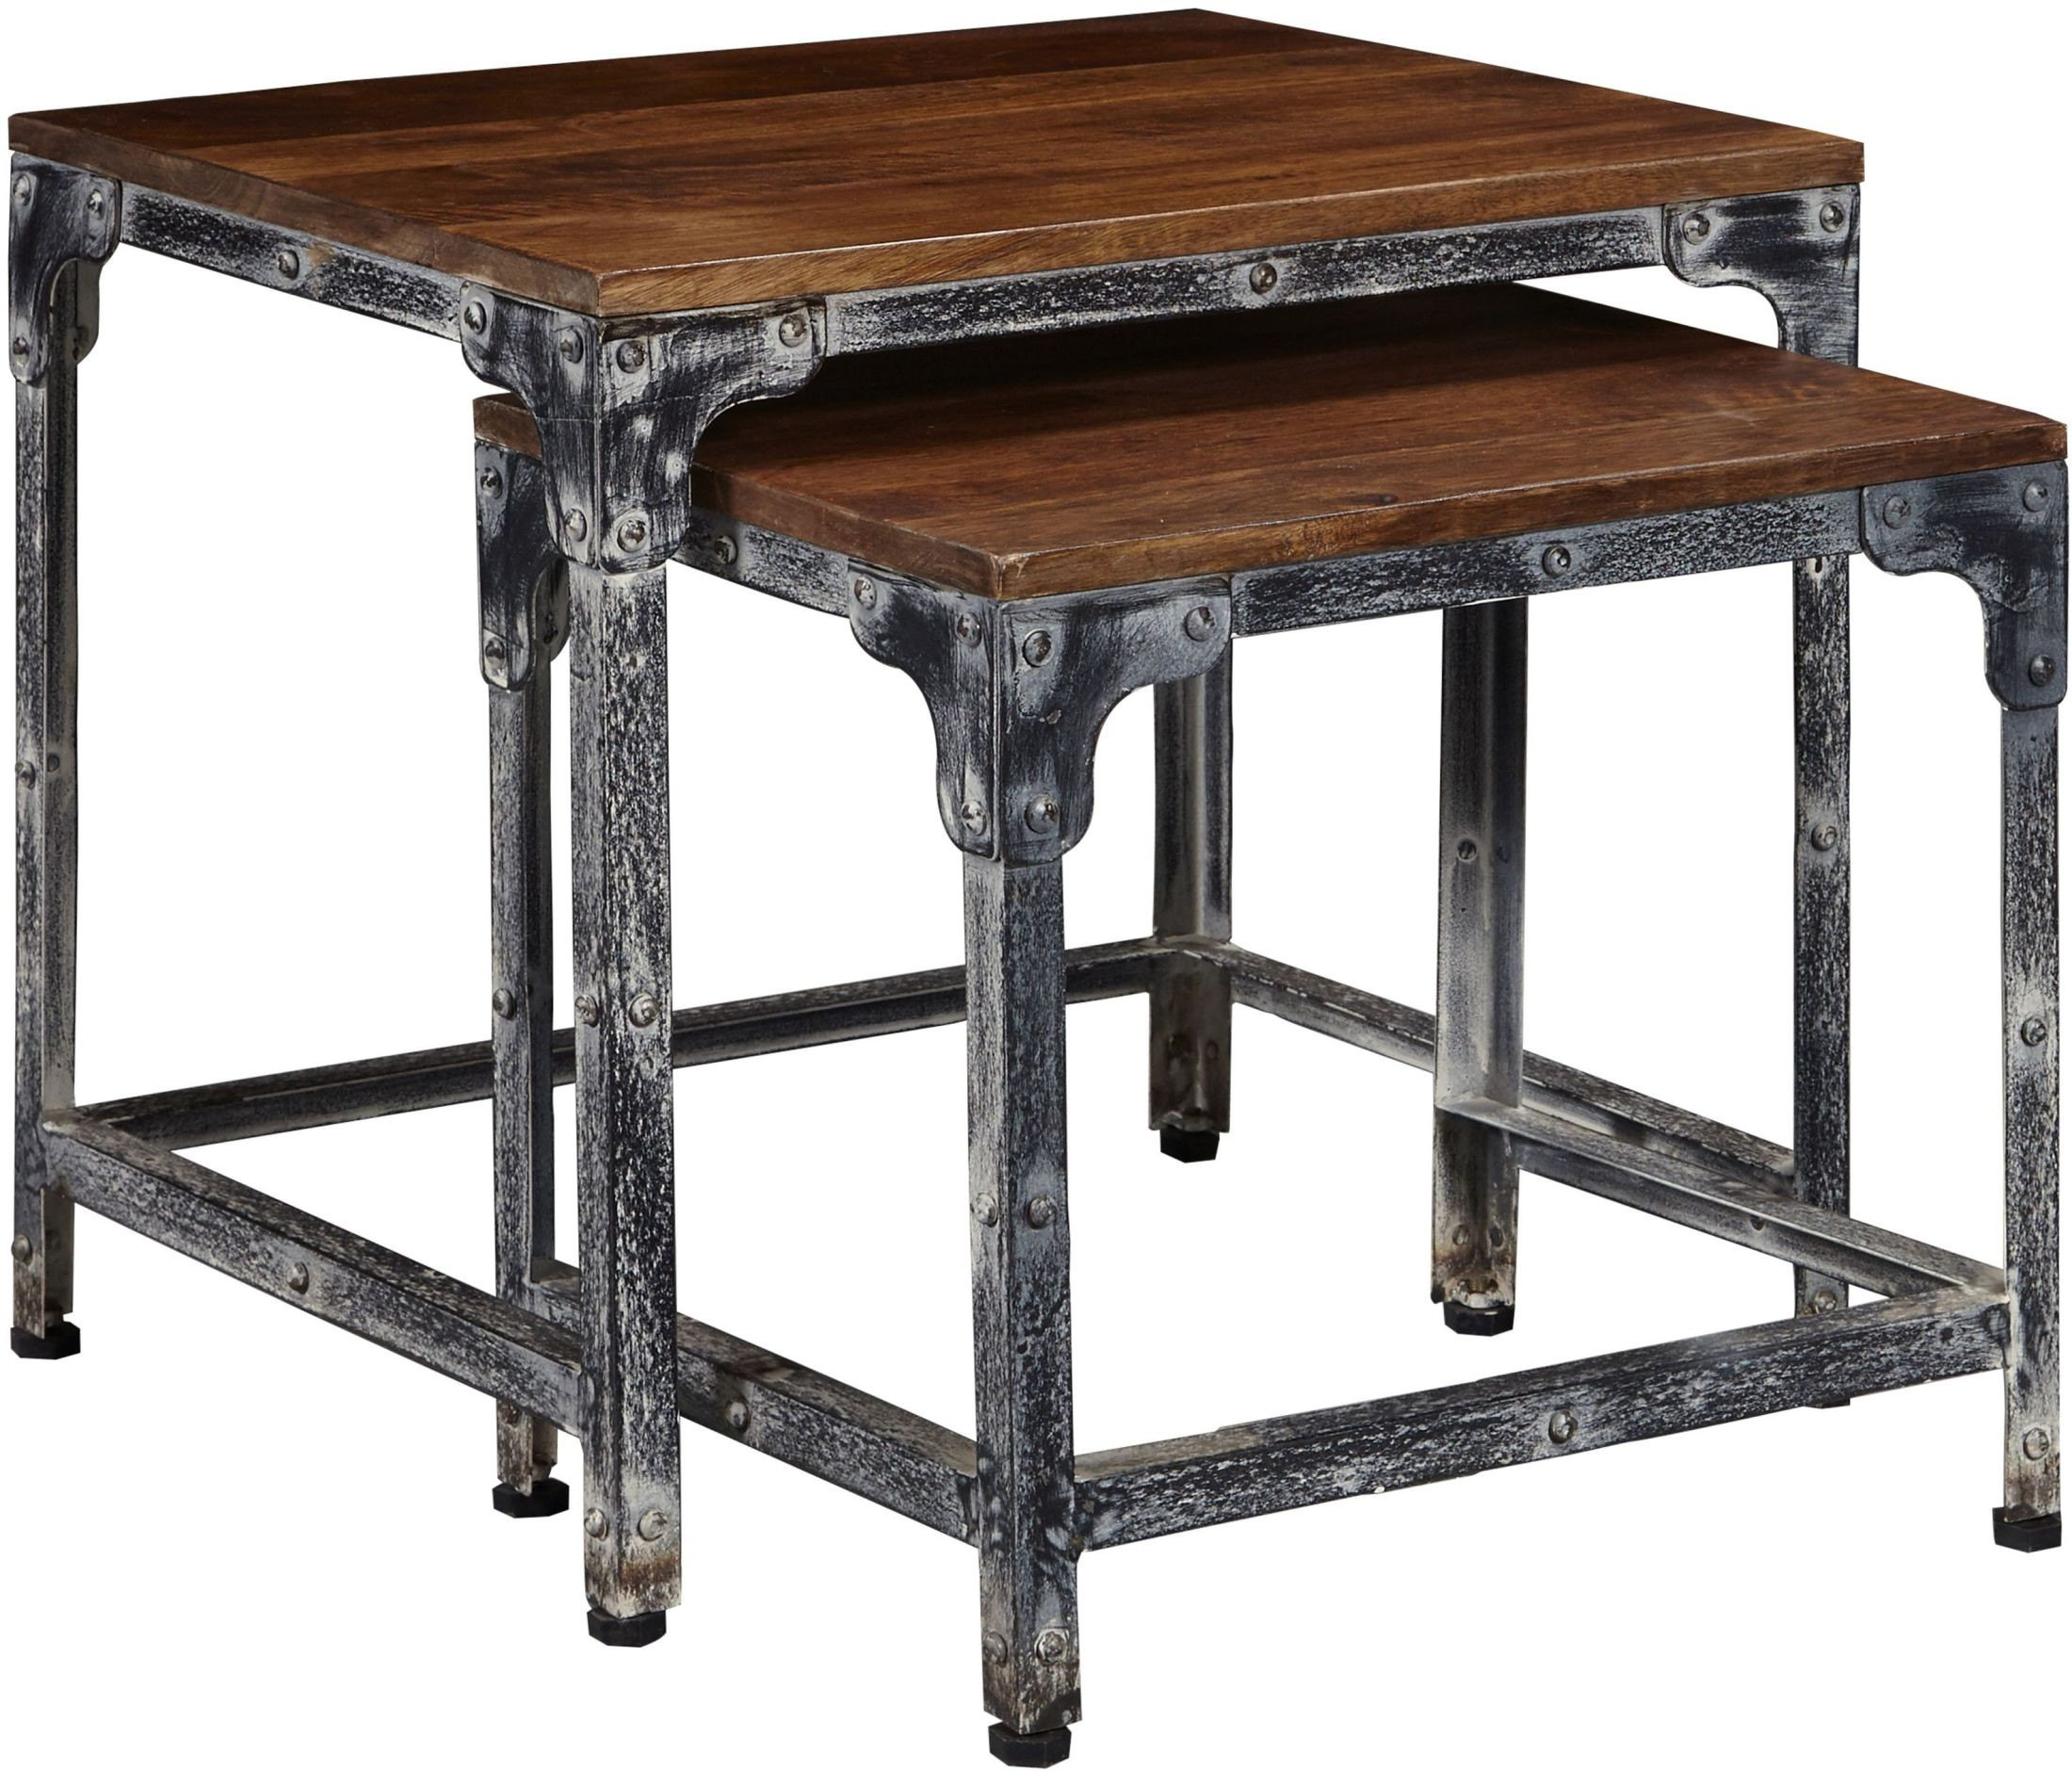 Distressed Wood And Metal Nesting Tables From Pulaski